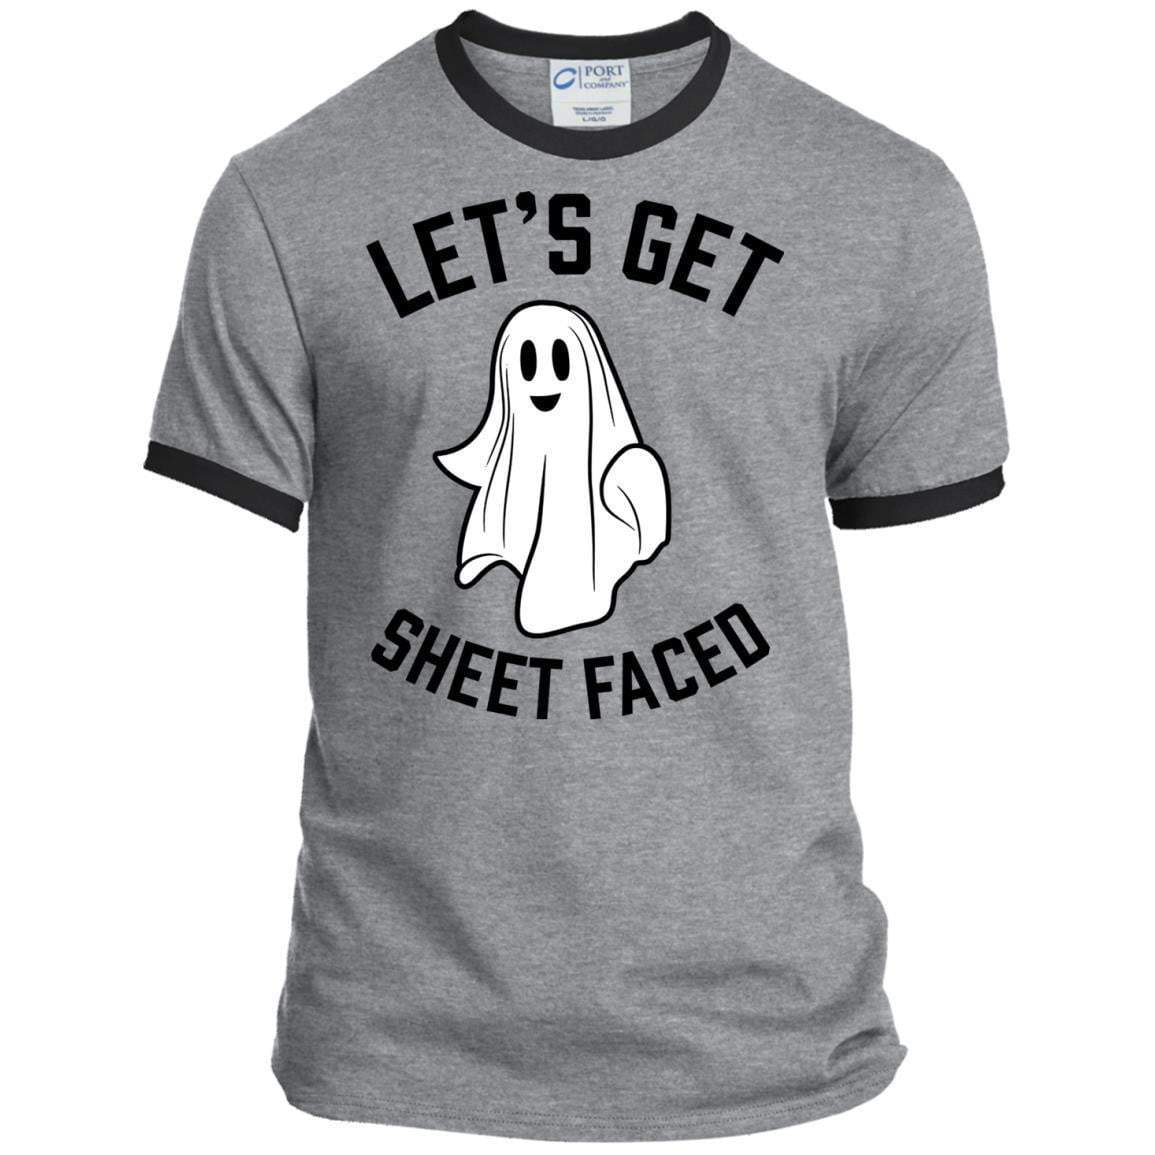 02e019940 Halloween Ringer T Shirts | Funny Halloween Shirts | 21 Threads